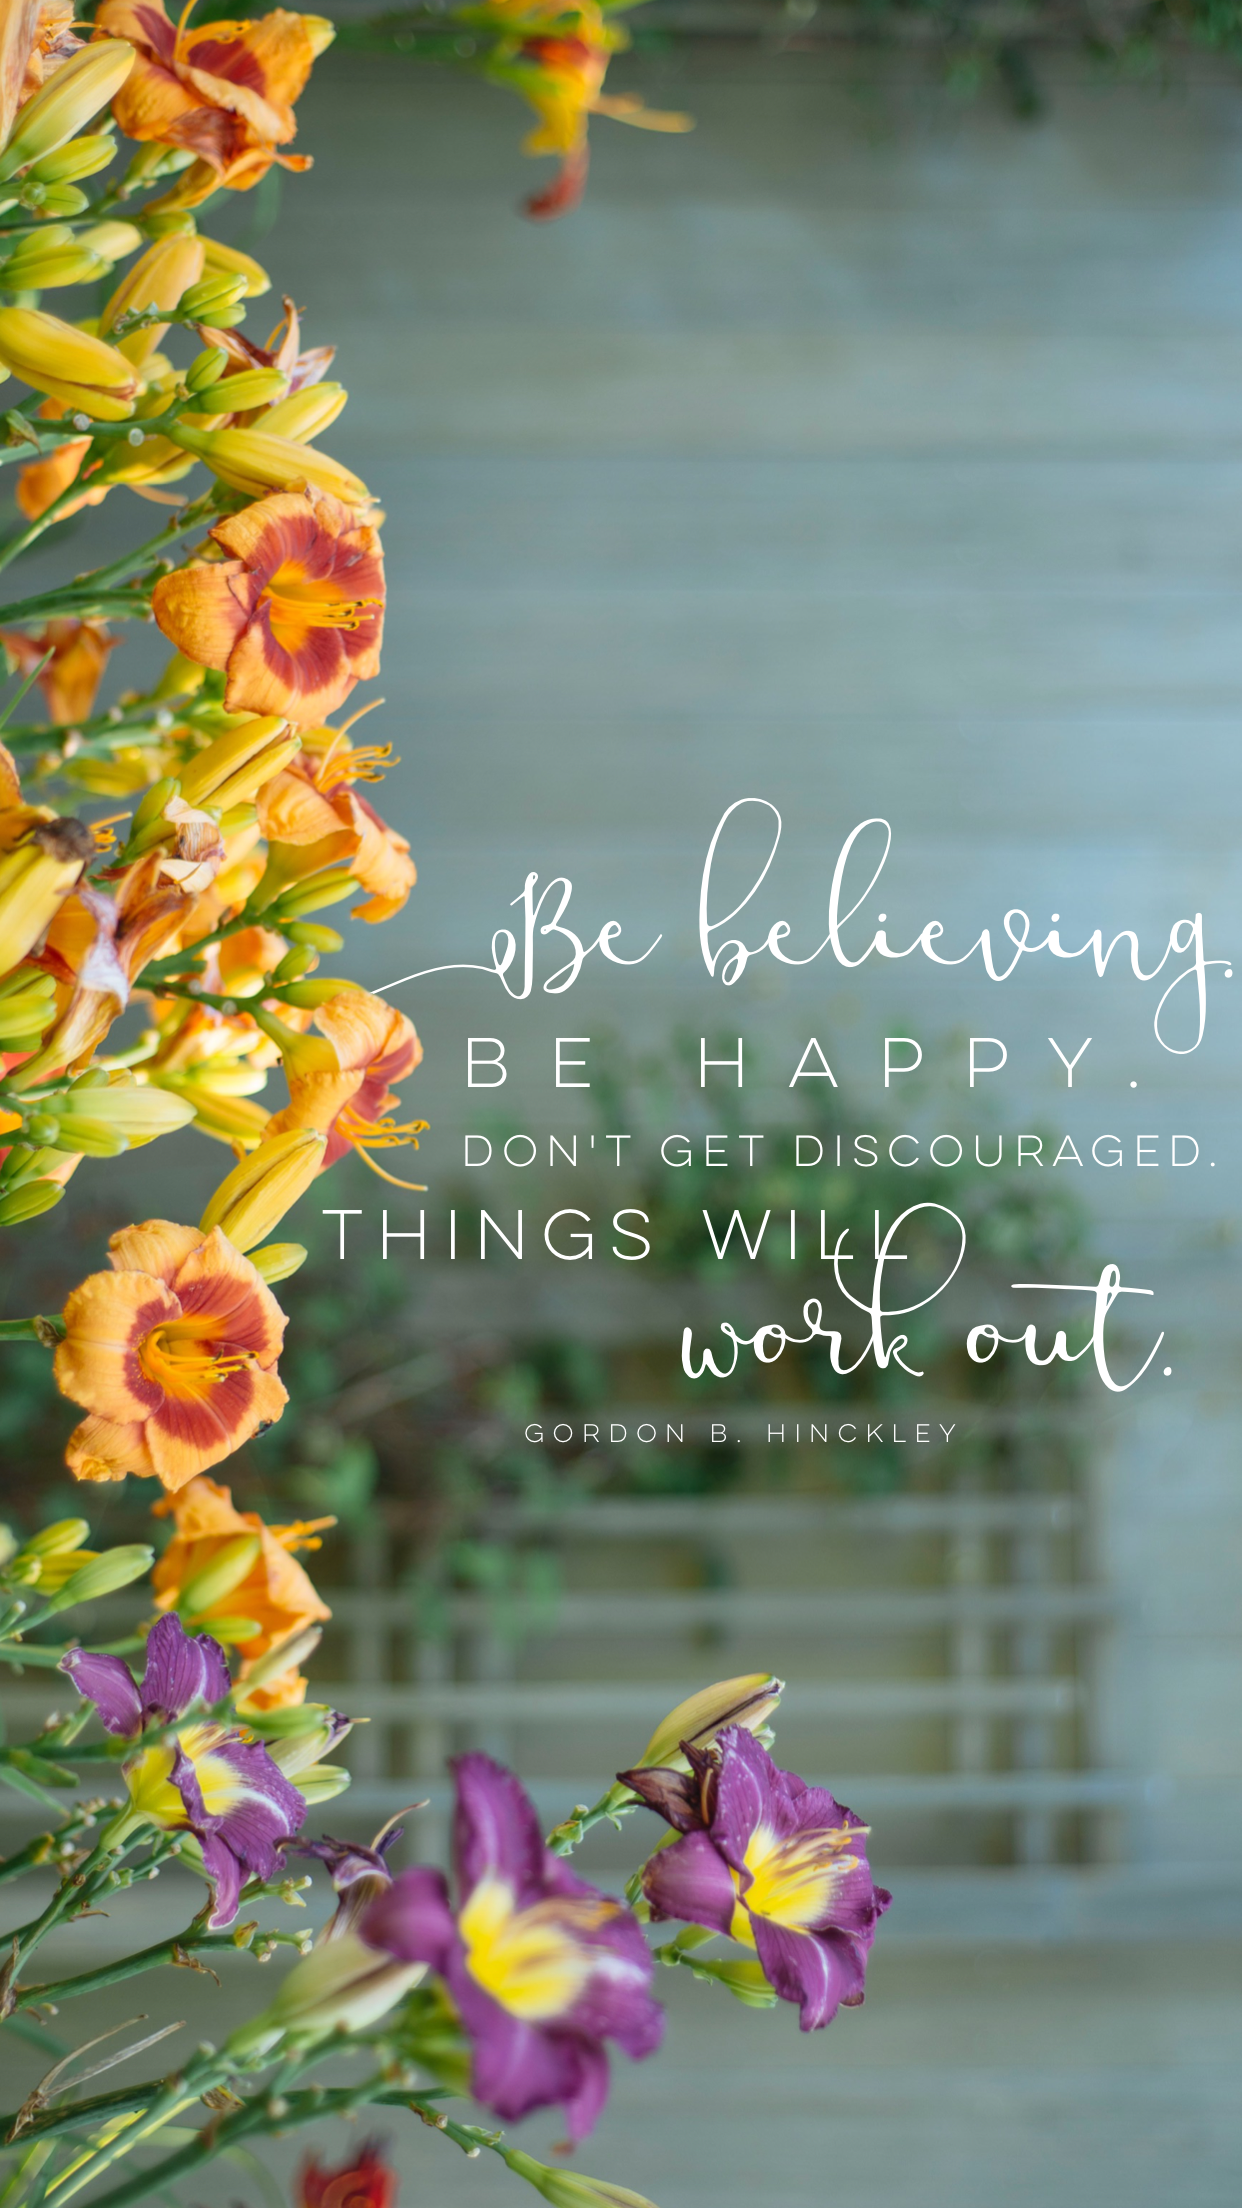 Be believing be happy donut get discouraged things will work out